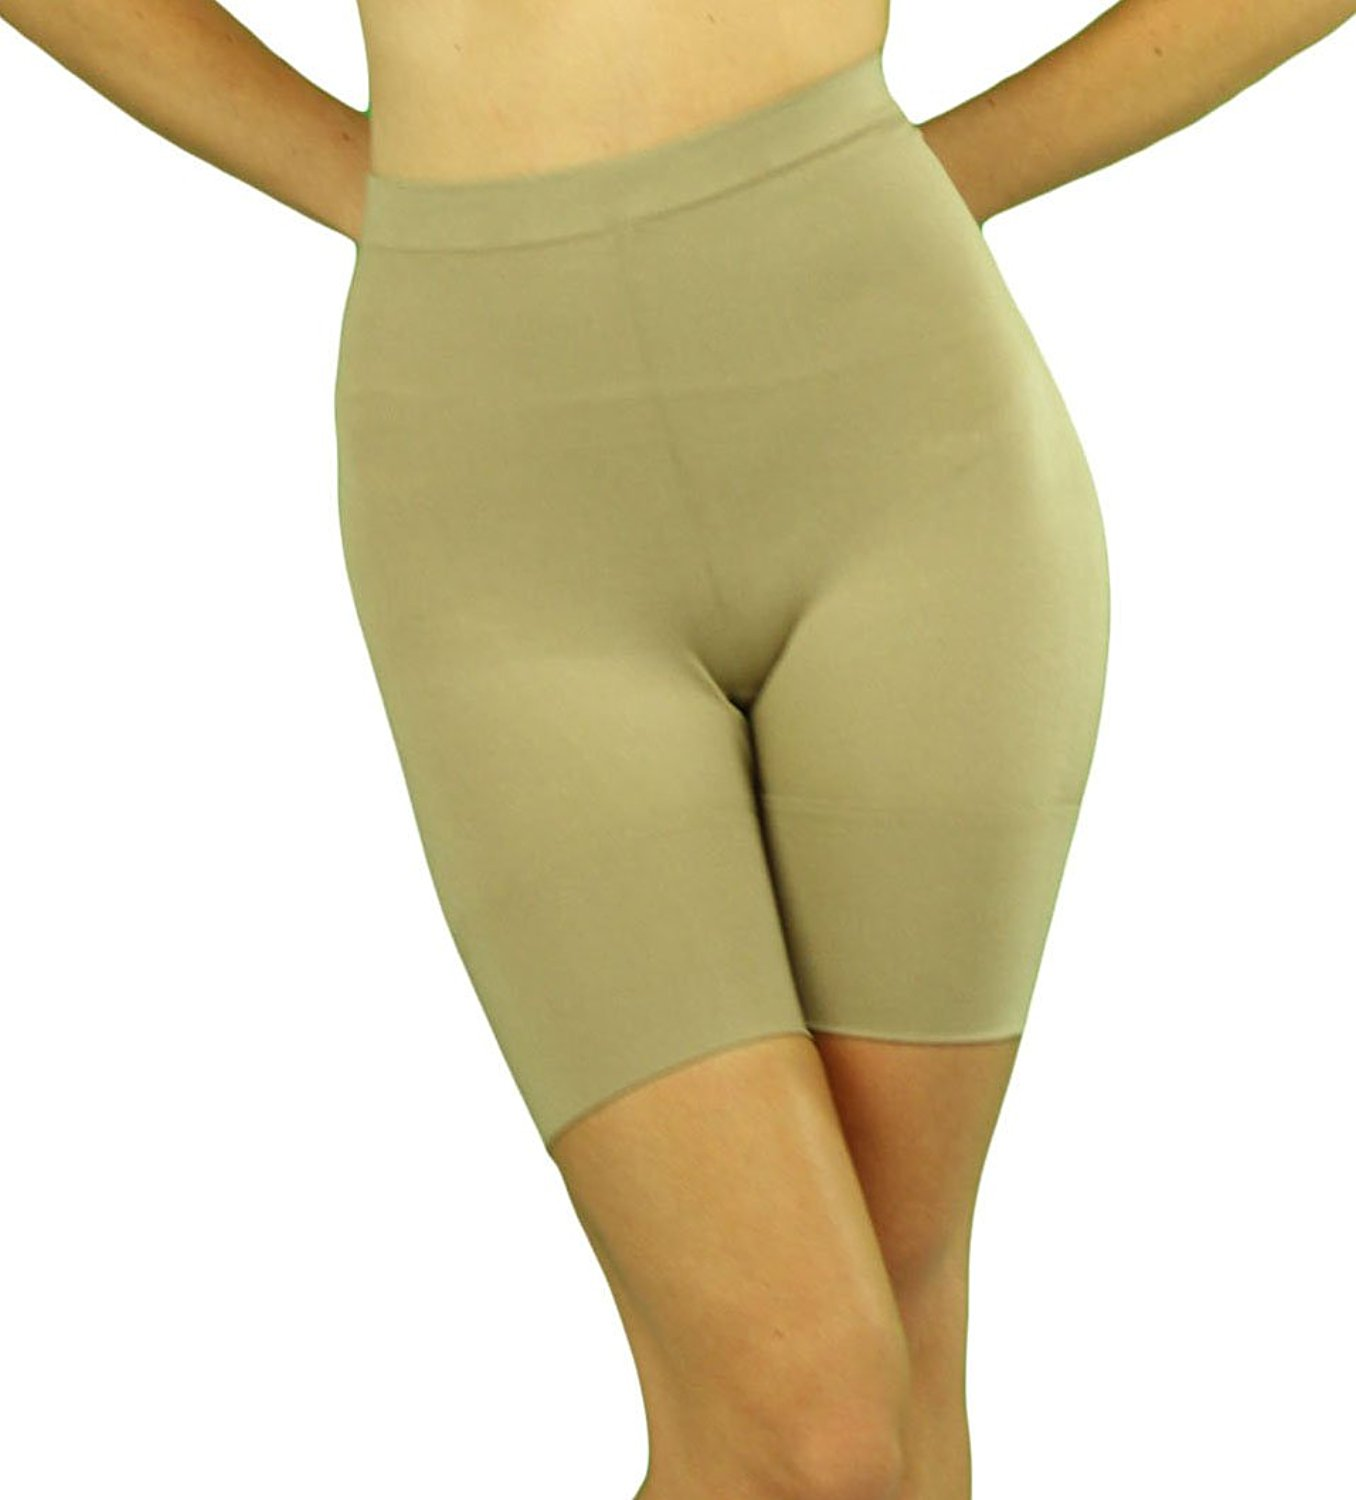 cc457cc5ada Get Quotations · ToBeInStyle Women s High Waisted Body Shaper Leg Shaper  Compressor